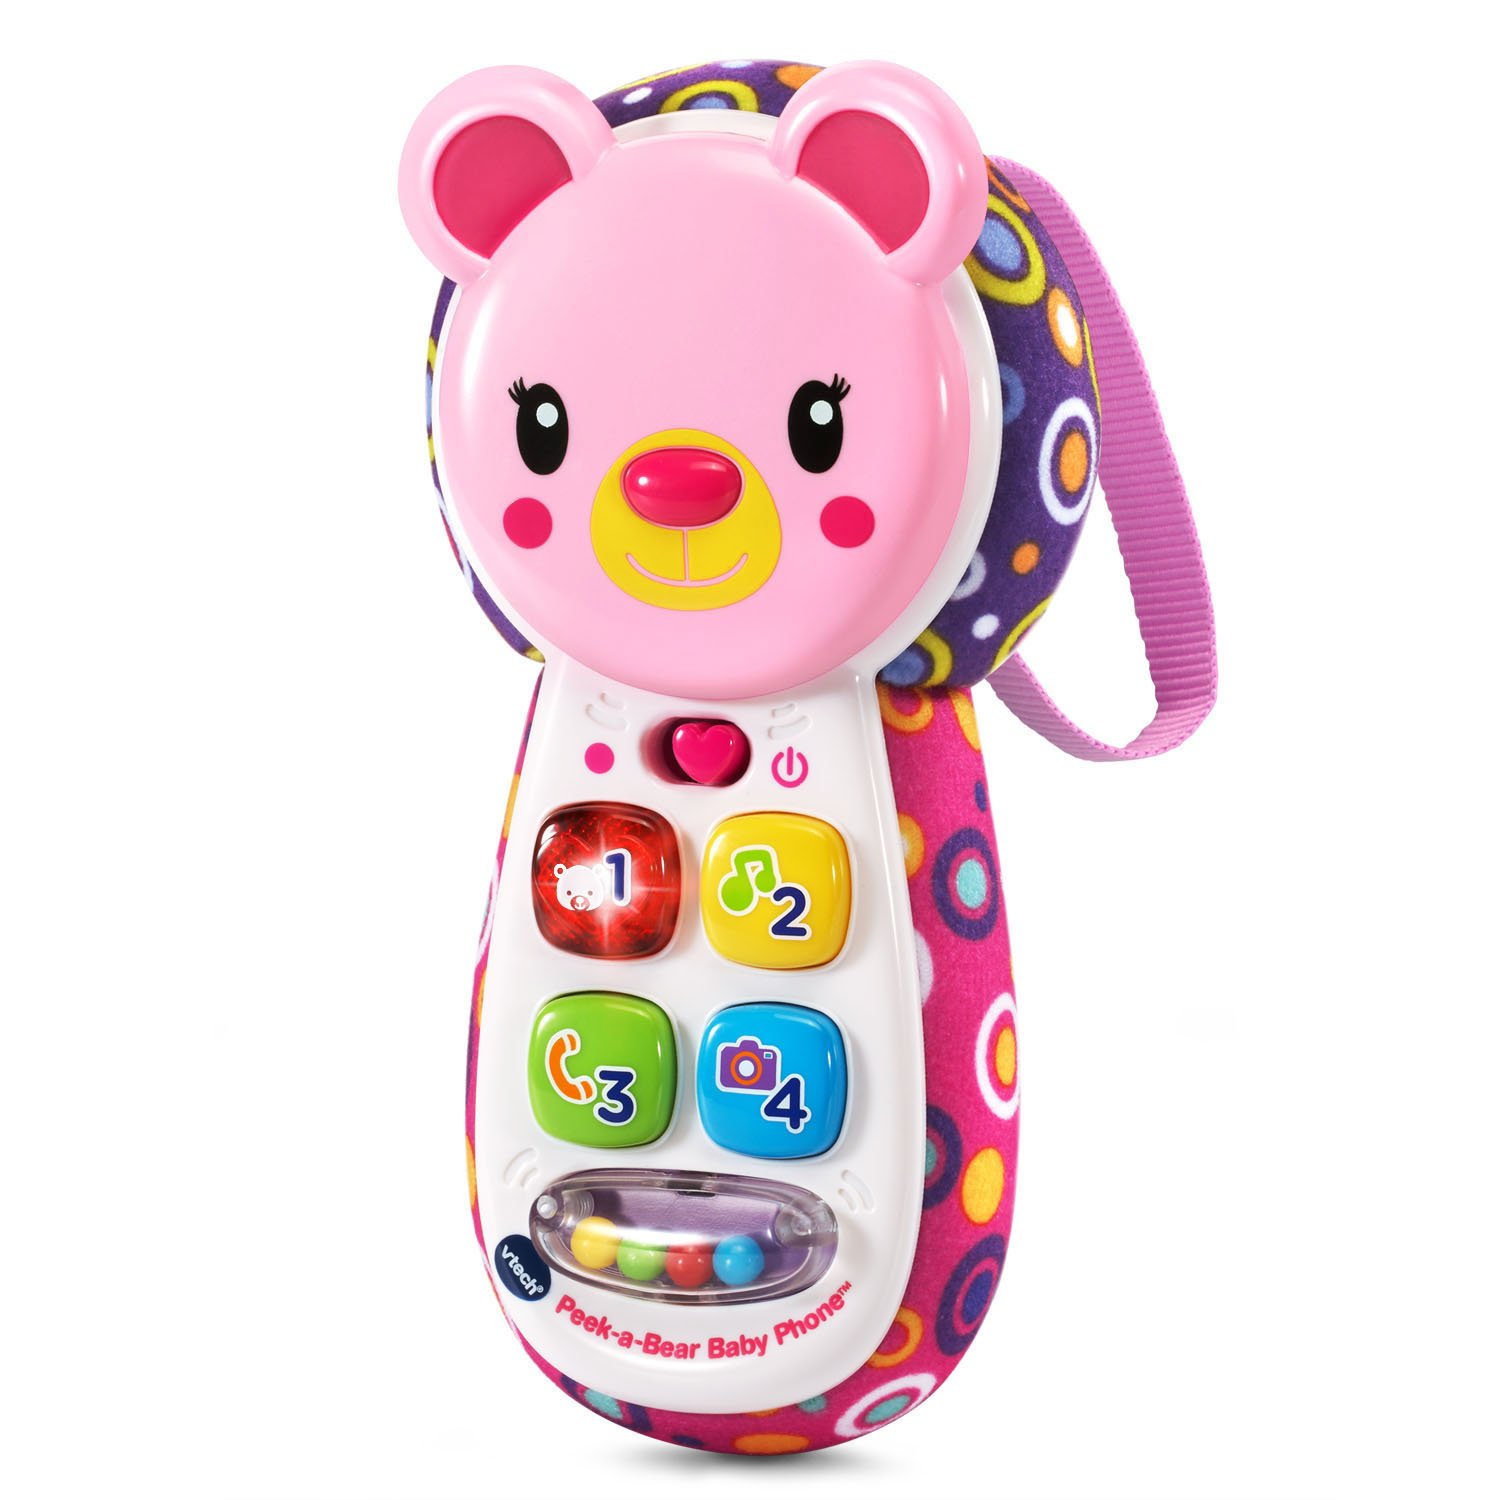 vtech beb peek a bear baby phone juguete de envio gratis tiendabuyyu. Black Bedroom Furniture Sets. Home Design Ideas